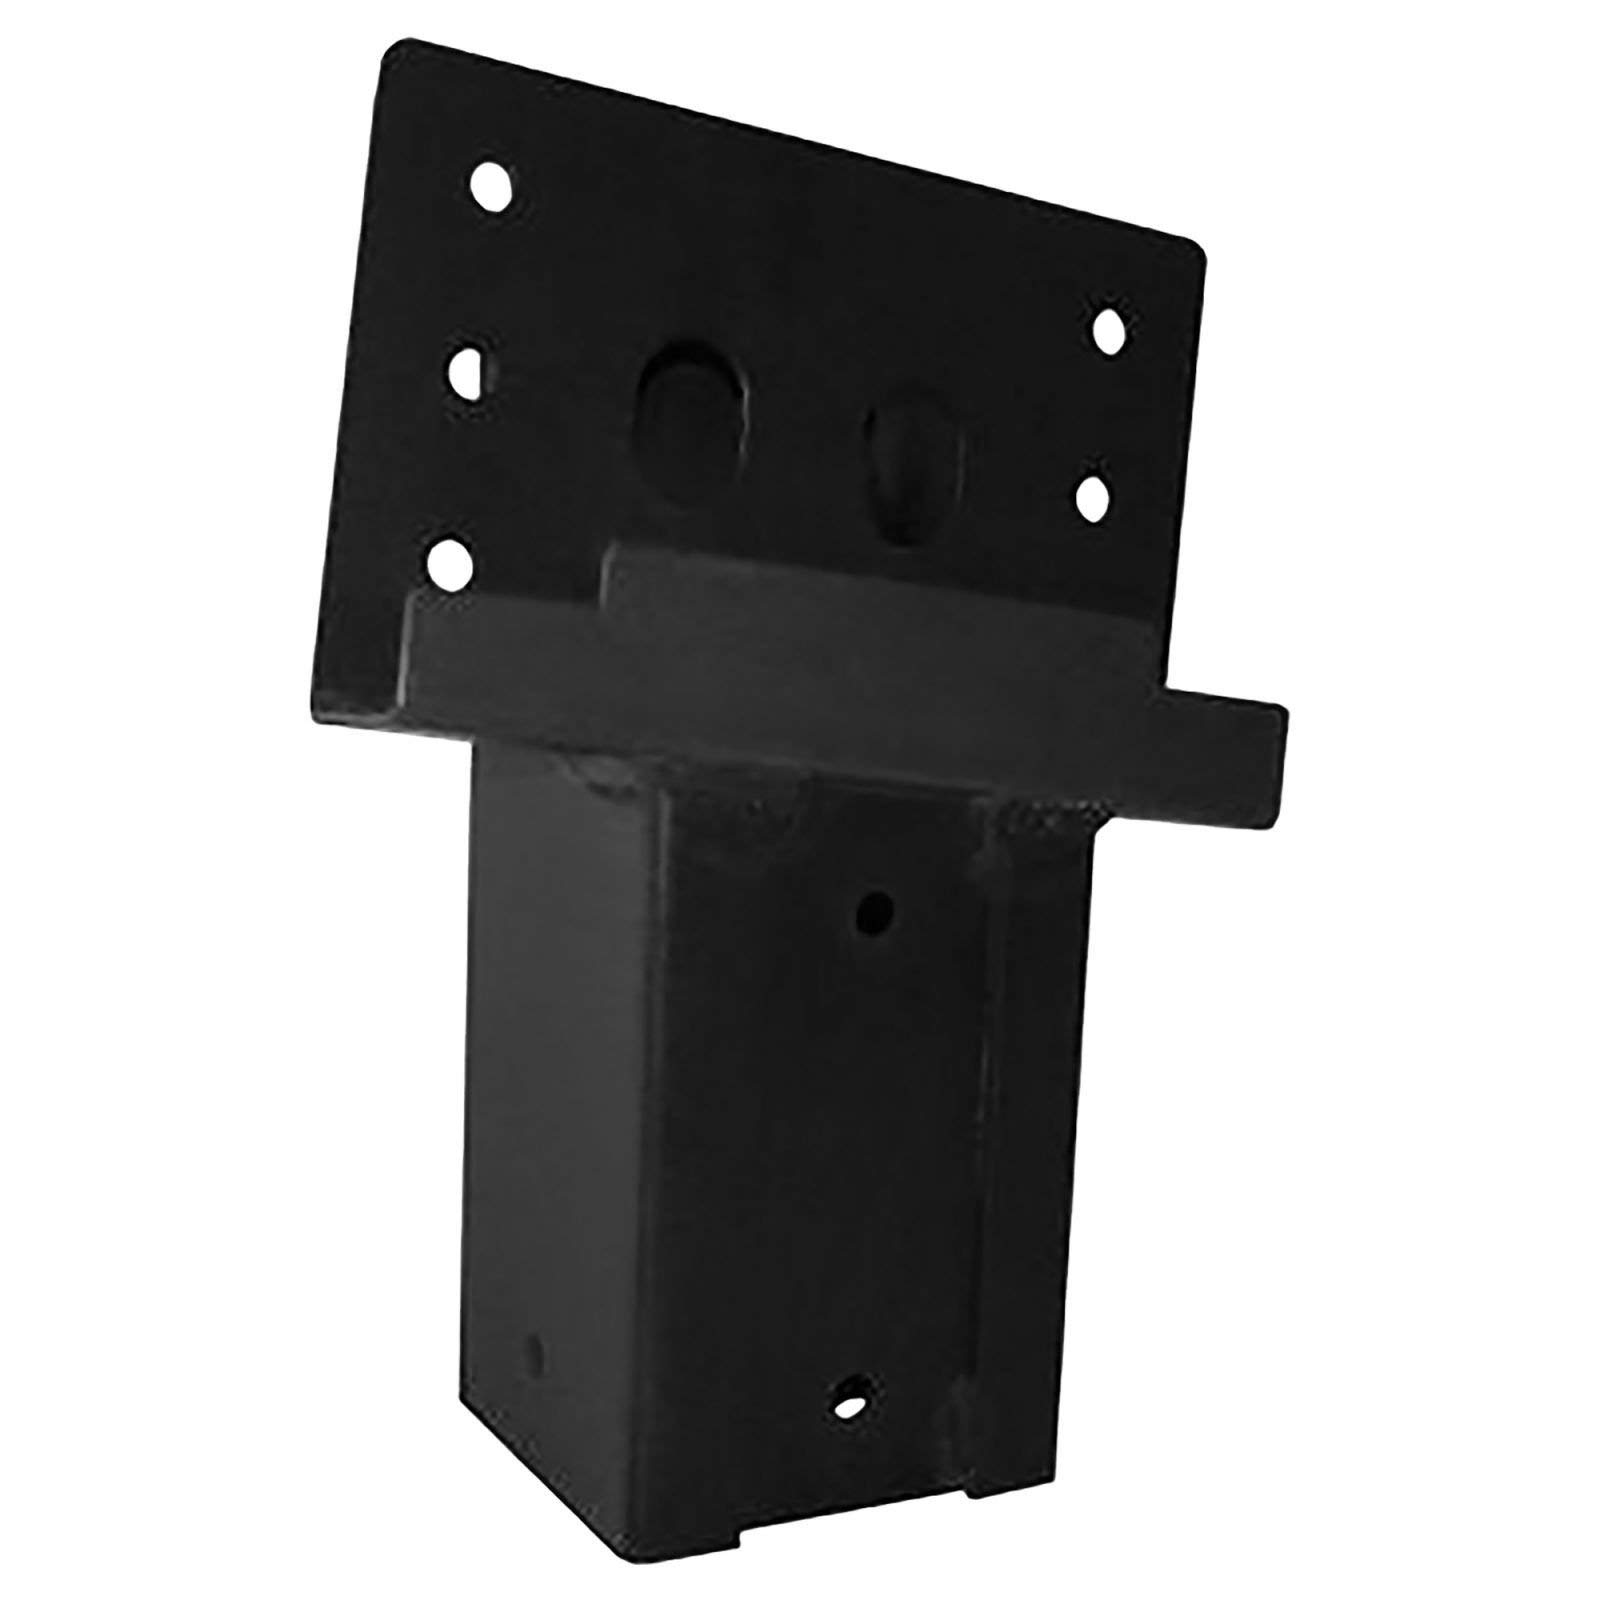 Summit Outdoor E1088 4 x 4 Compound Angle Elevator Brackets, Set of 4 (Renewed) by Summit Outdoor